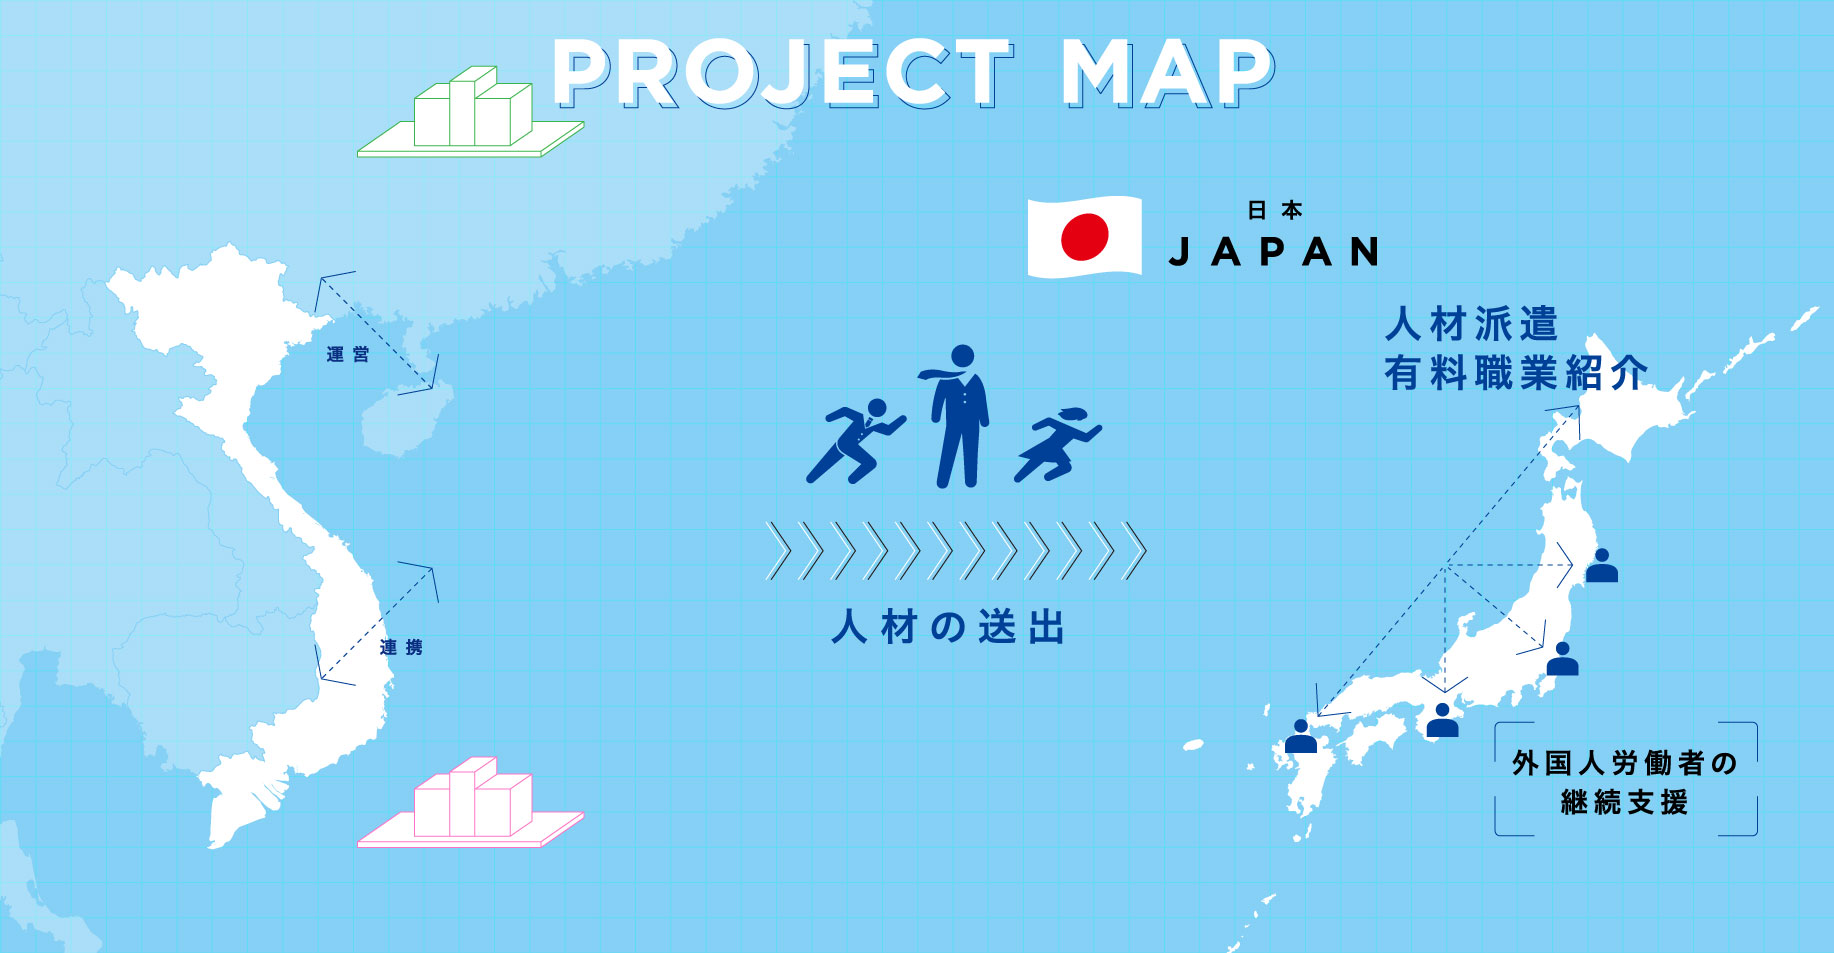 PROJECT MAP